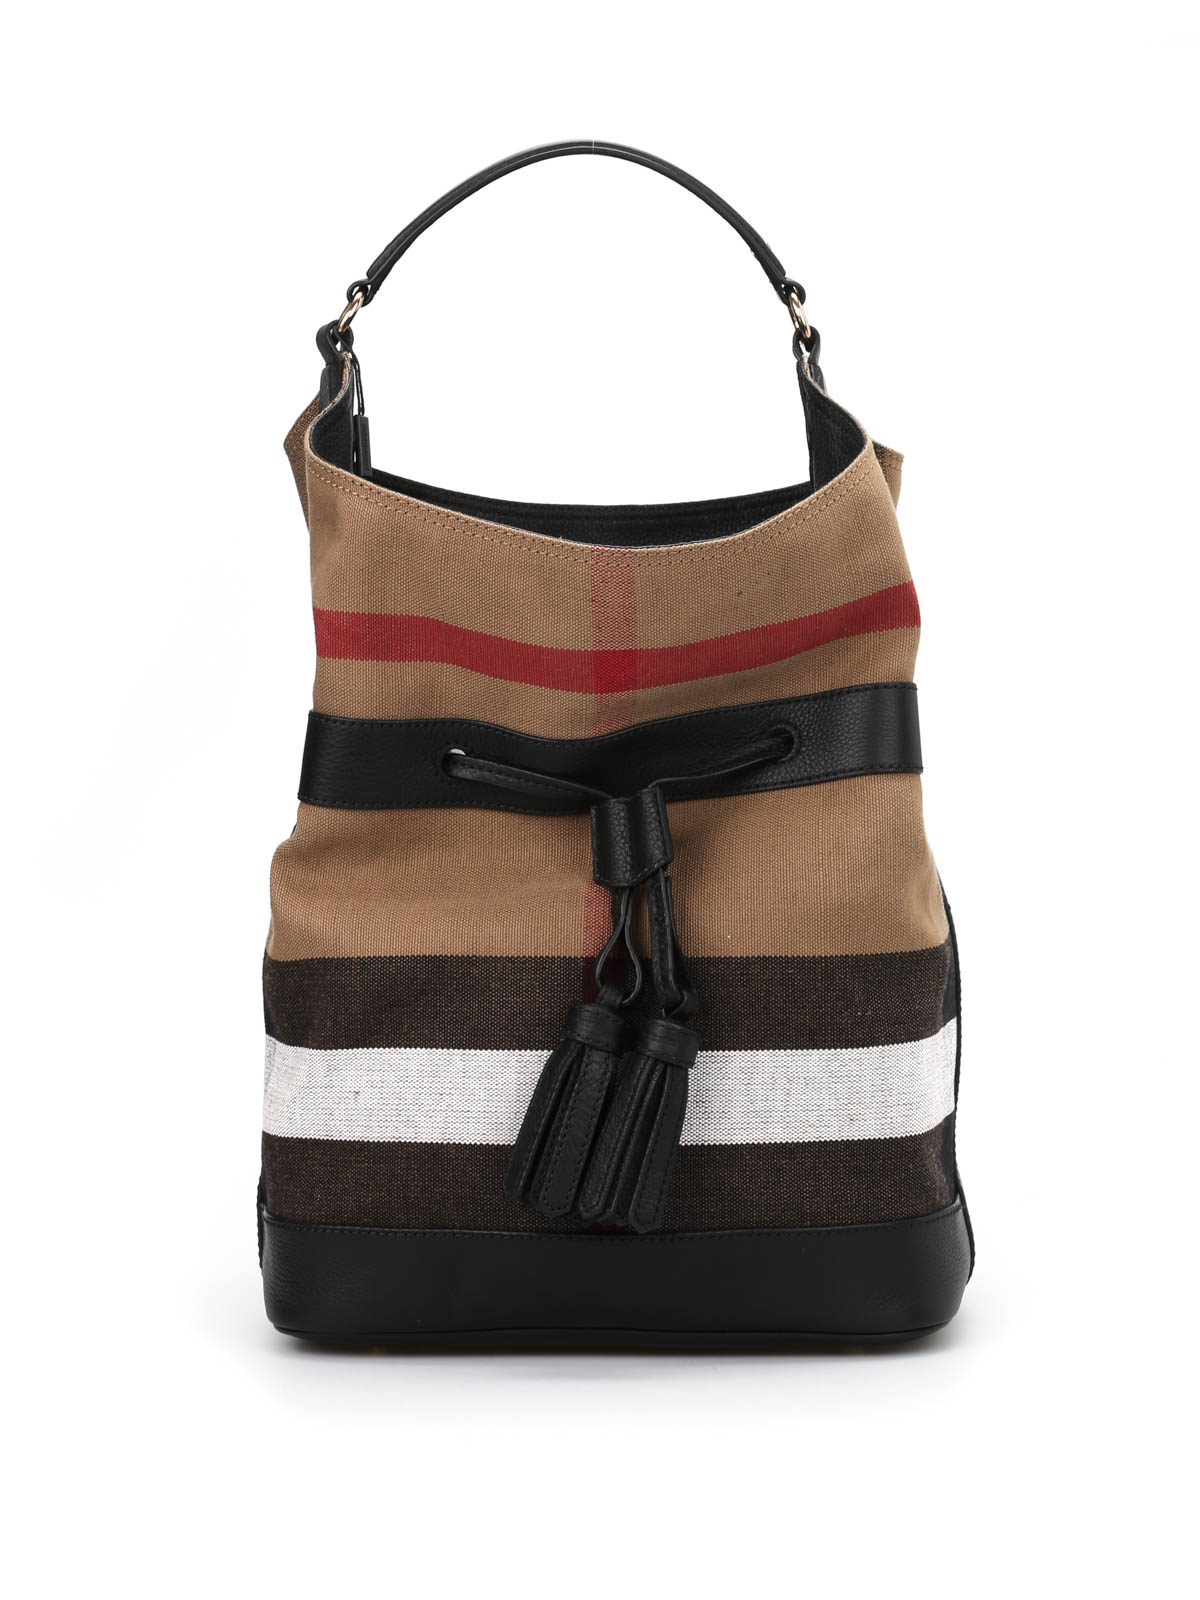 23c36aed332d Burberry - Large Ashby canvas bag - Bucket bags - 3997850 1